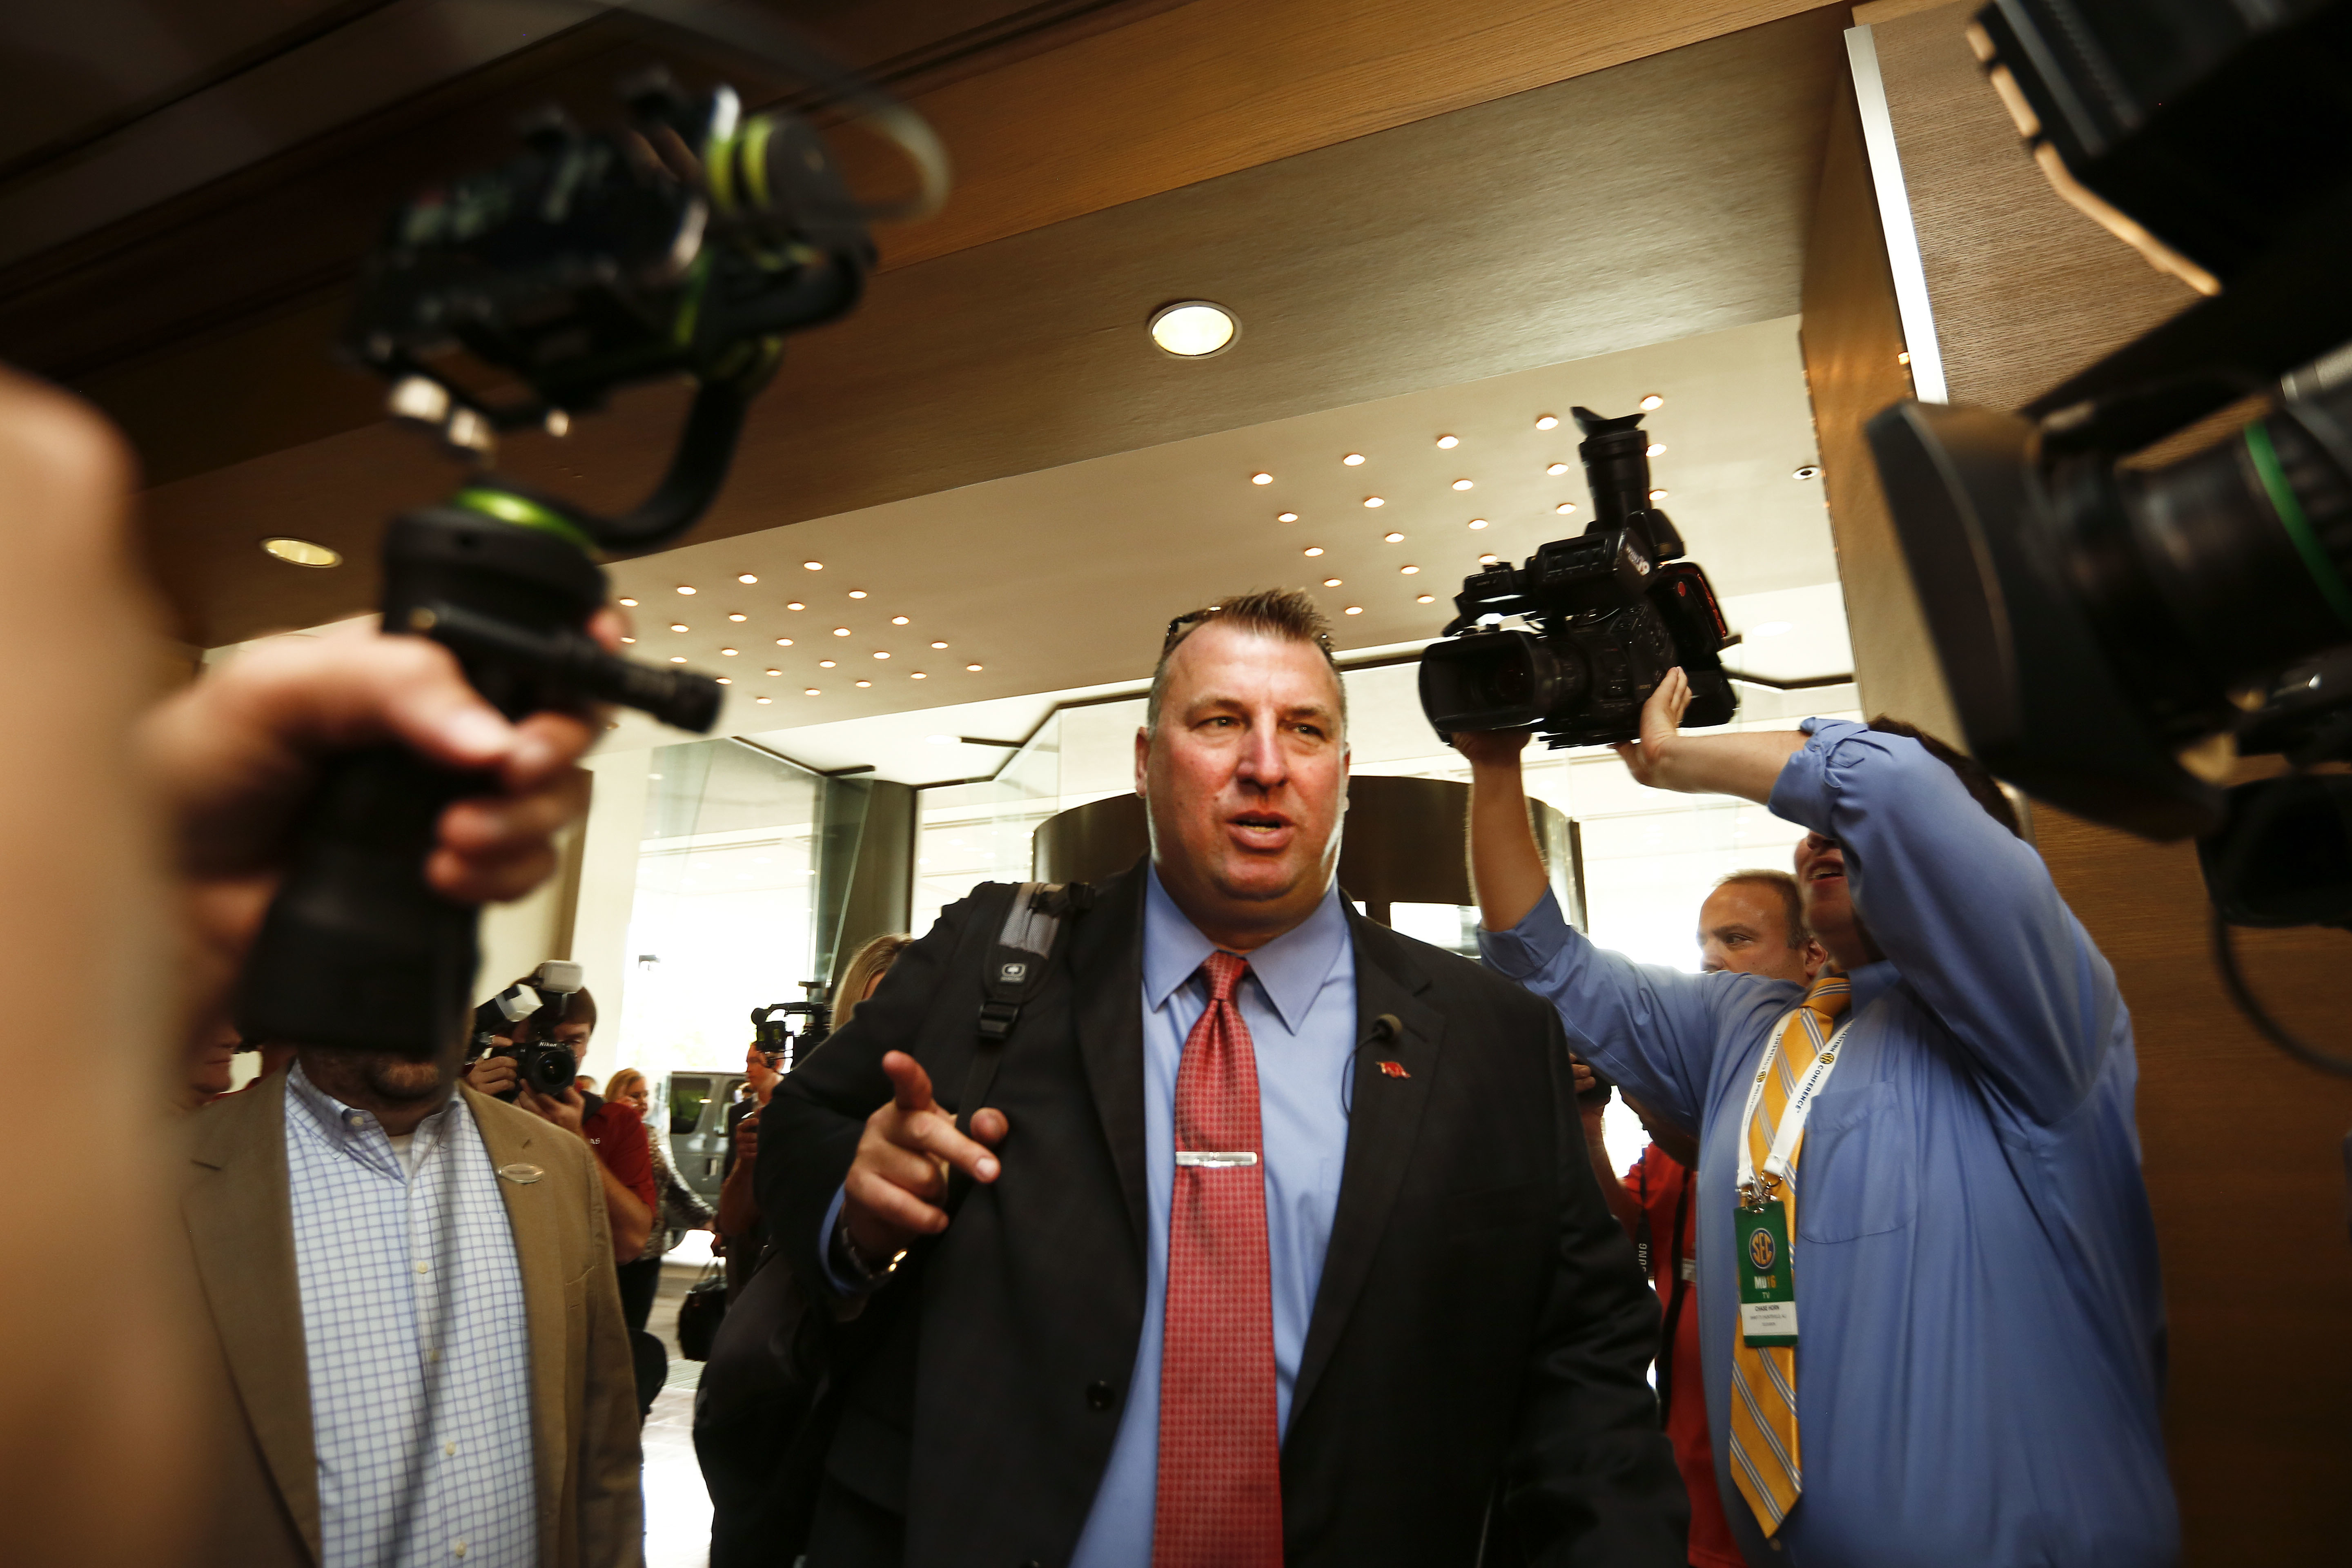 Arkansas coach Bret Bielema walks into a sea of media at the Southeastern Conference NCAA college football media days, Wednesday, July 13, 2016, in Hoover, Ala. (AP Photo/Brynn Anderson)